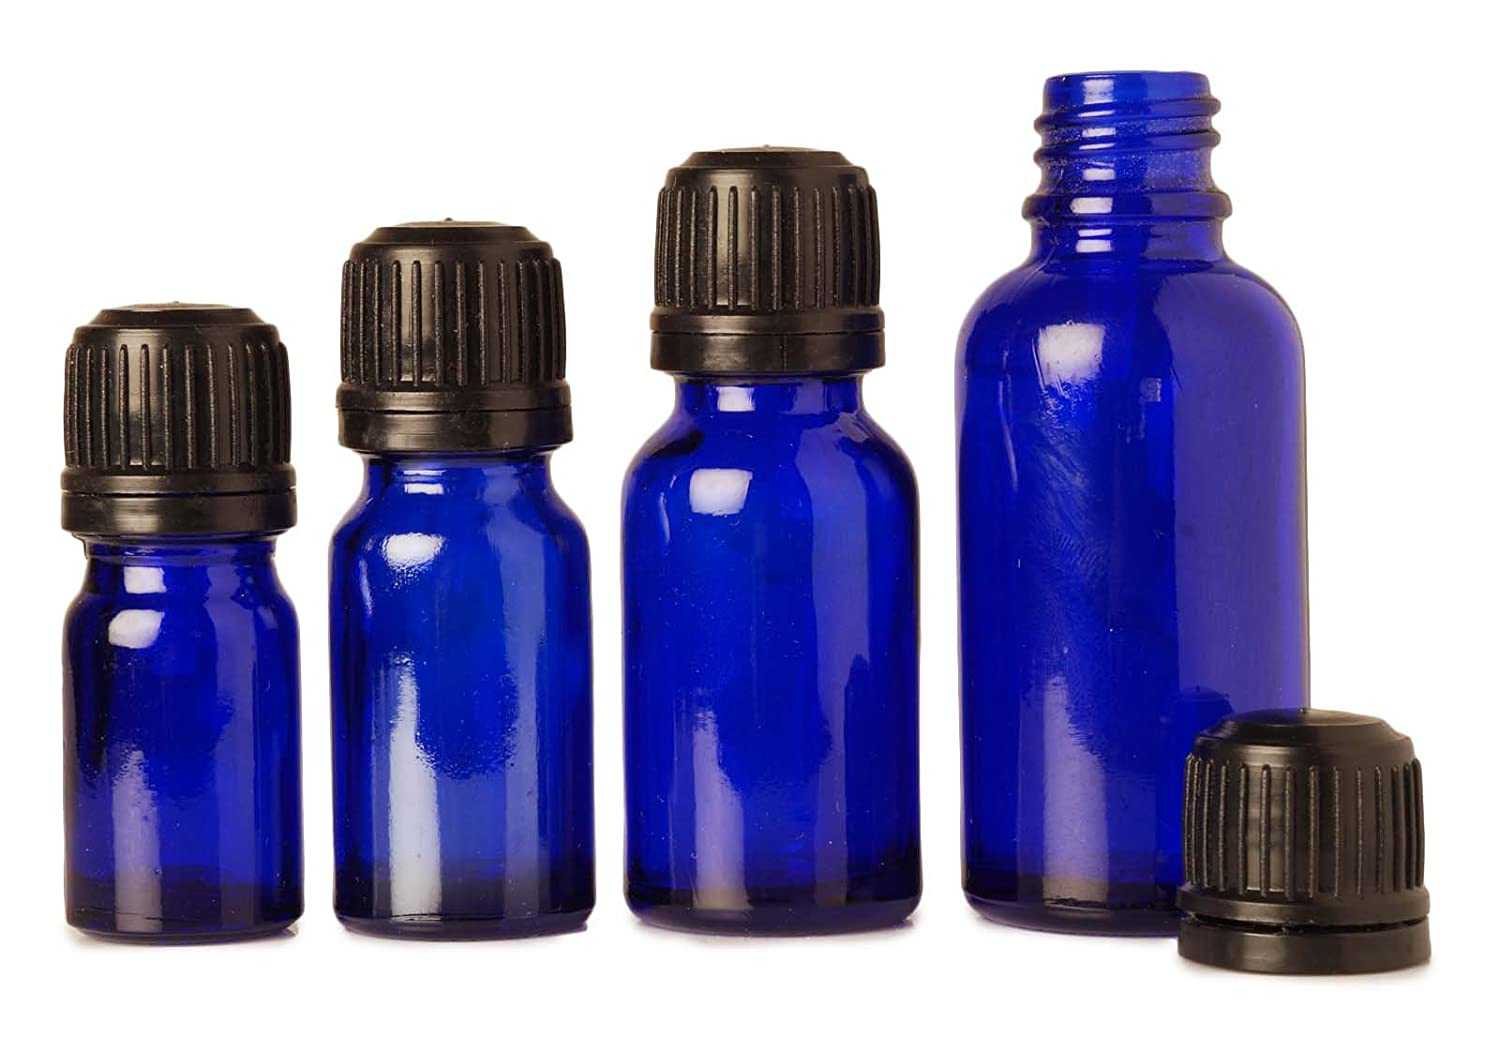 6 Pcs Blue Glass Empty Bottles Euro Dropper With Tamper Evident Black Screw Cap Aromatherapy Oils 5 ml MT Bottles & Jars